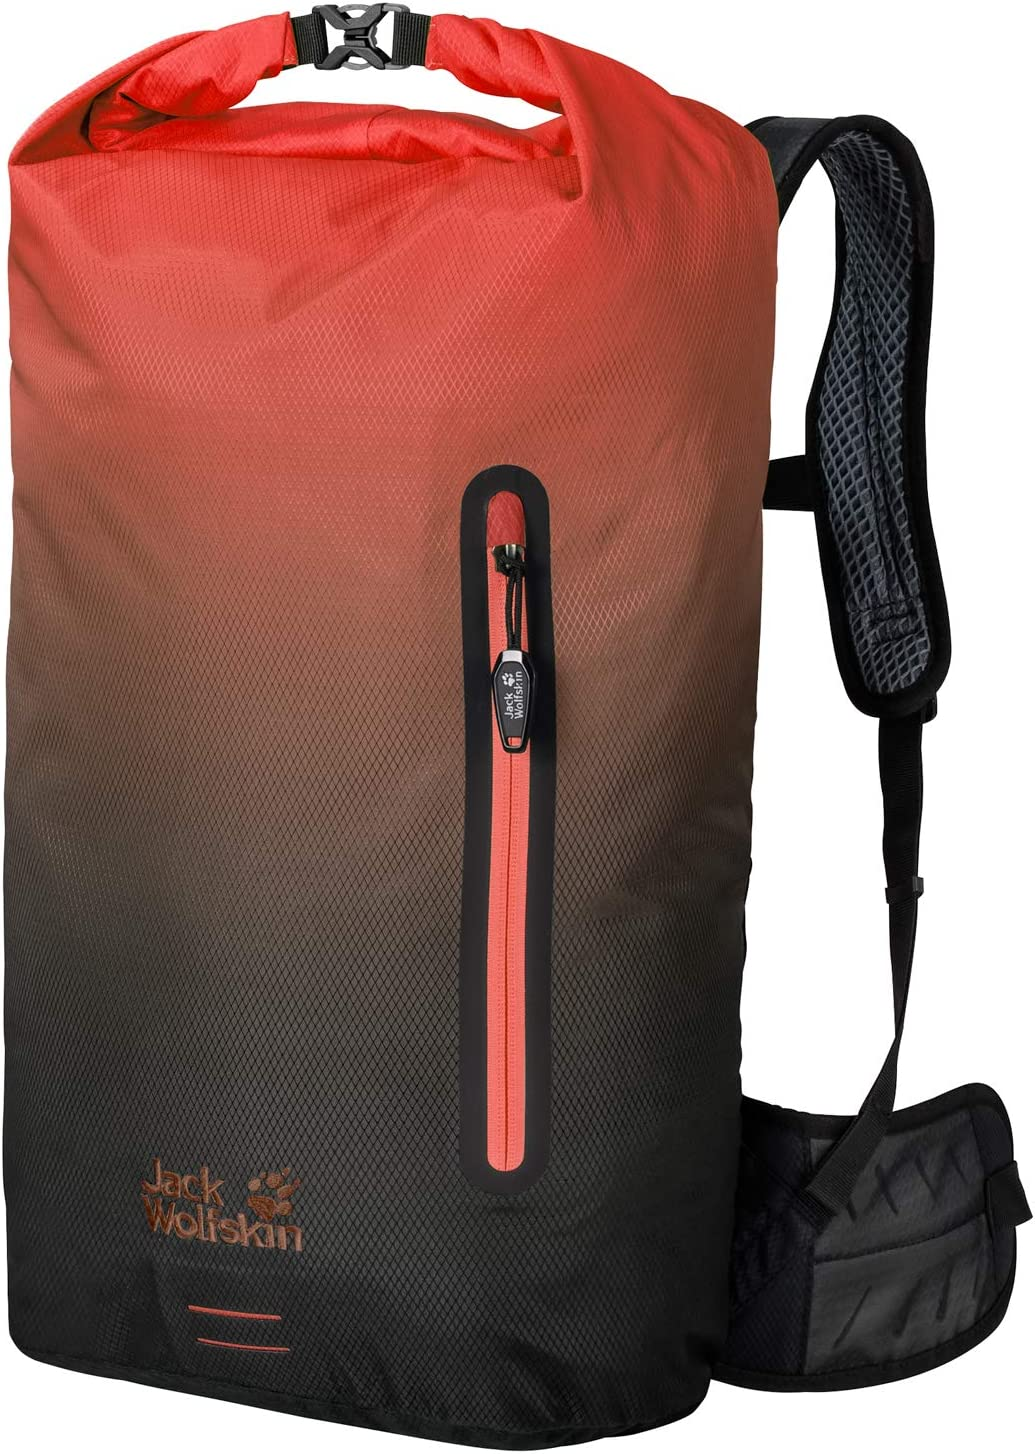 Jack Wolfskin Max 47% OFF Halo Max 49% OFF Hiking Backpack 26